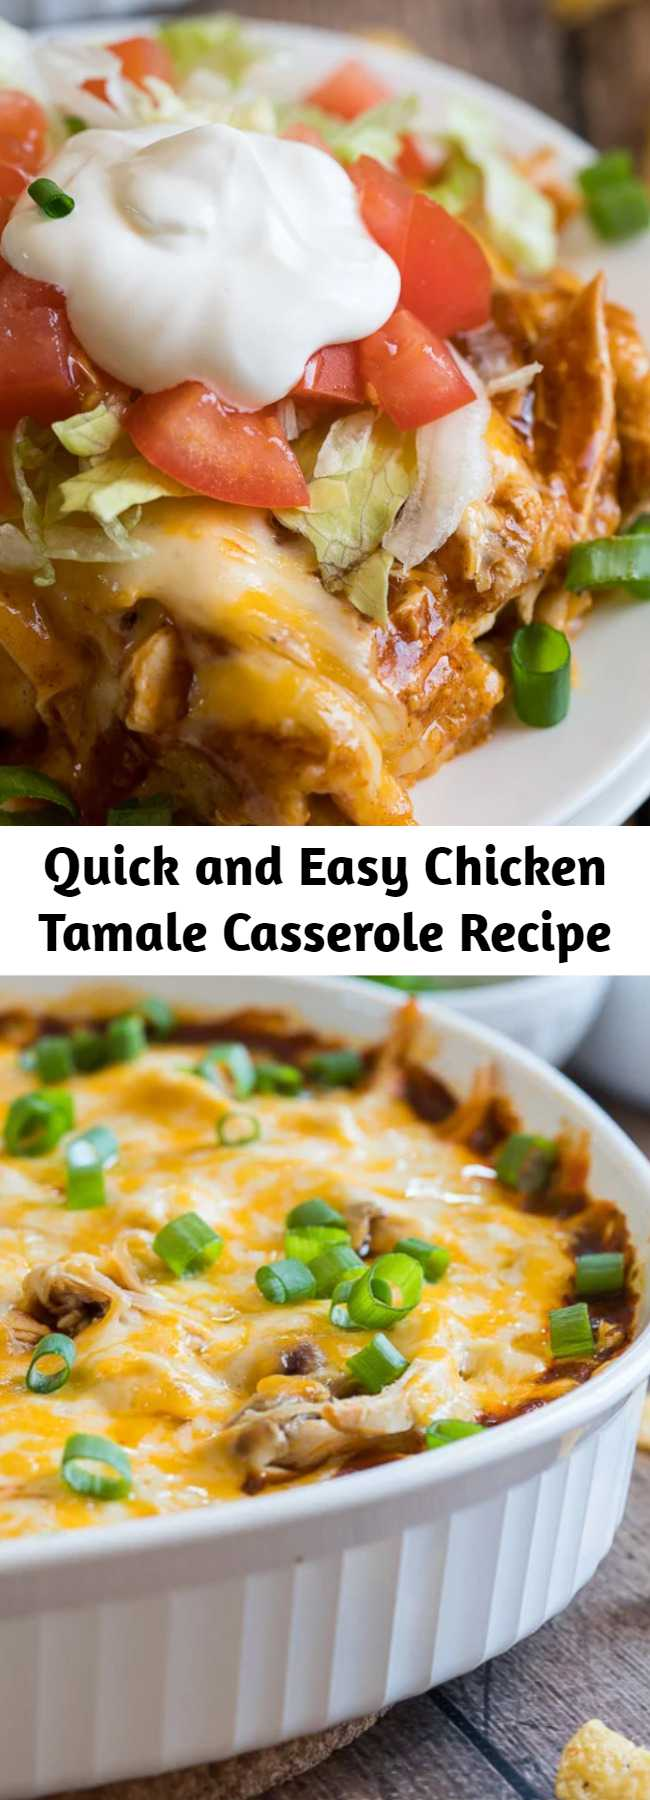 Quick and Easy Chicken Tamale Casserole Recipe - This cheesy Chicken Tamale Casserole is a quick and easy family weeknight dinner that has all the flavors of classic tamales without all the fuss!